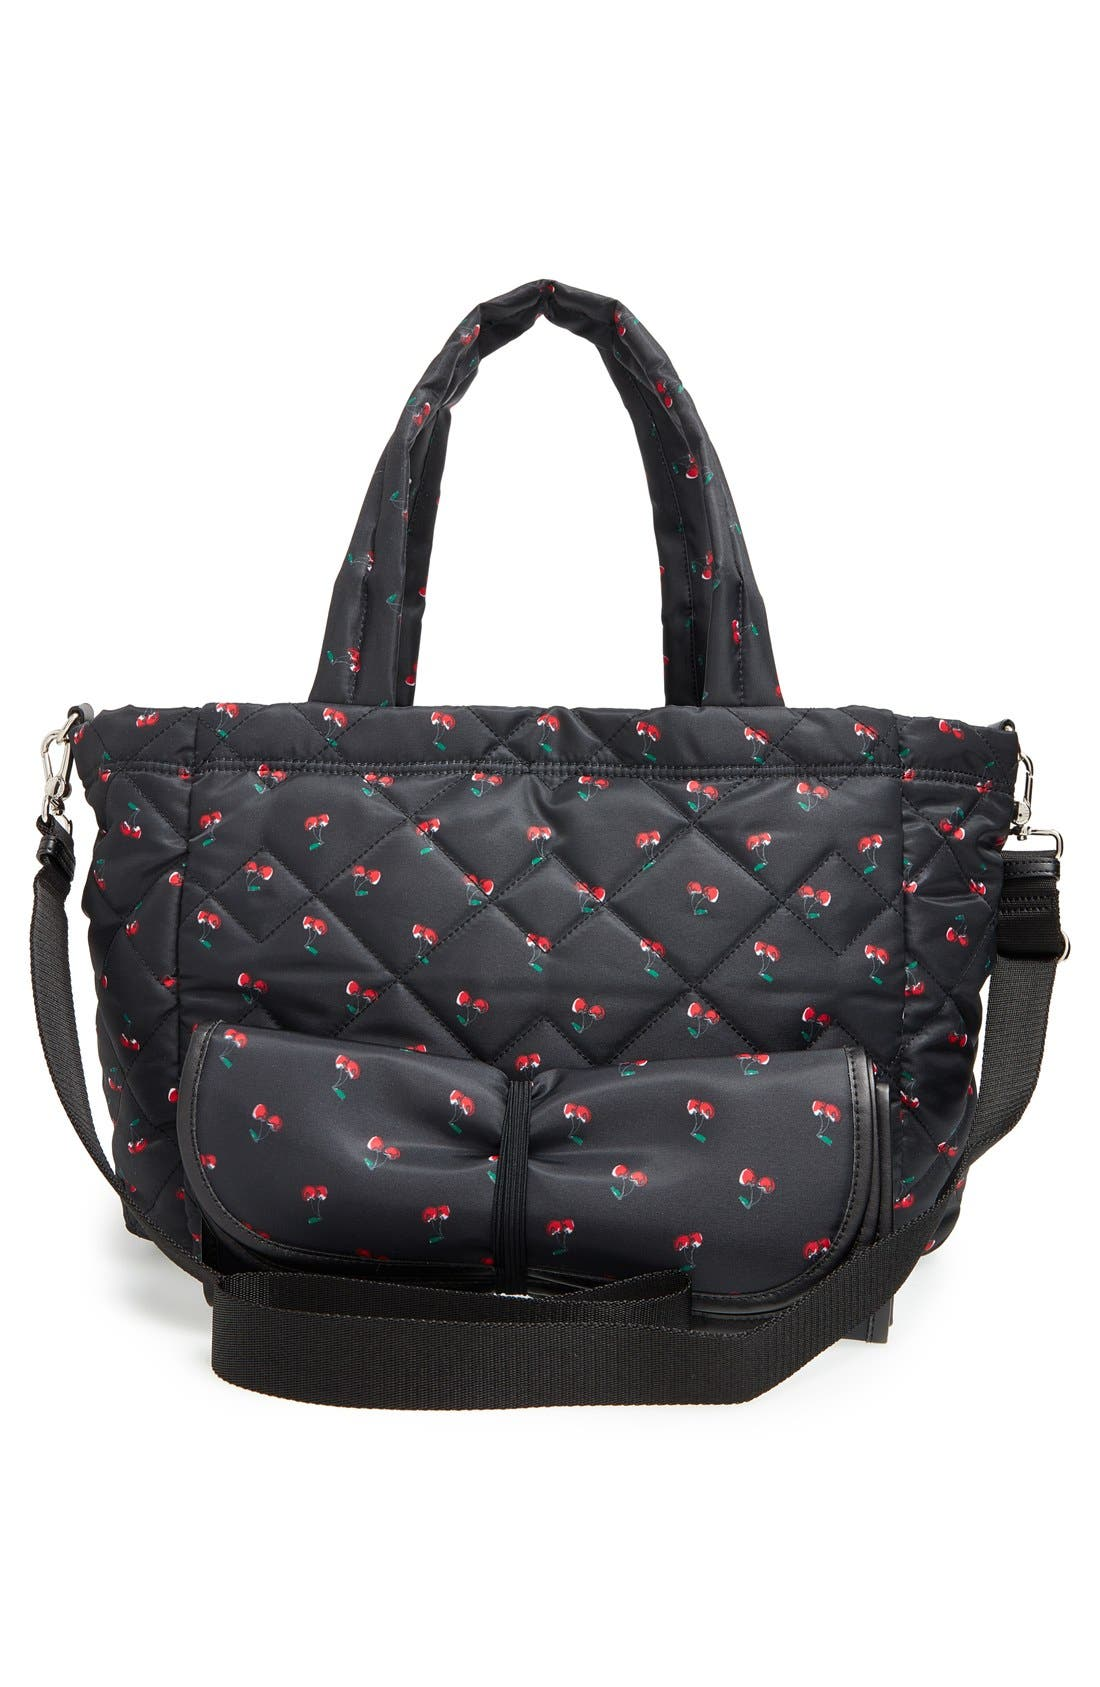 MARC JACOBS,                             MARC BY MARC JACOBS 'Crosby - Elizababy' Quilted Fruit Print Diaper Bag,                             Alternate thumbnail 2, color,                             001